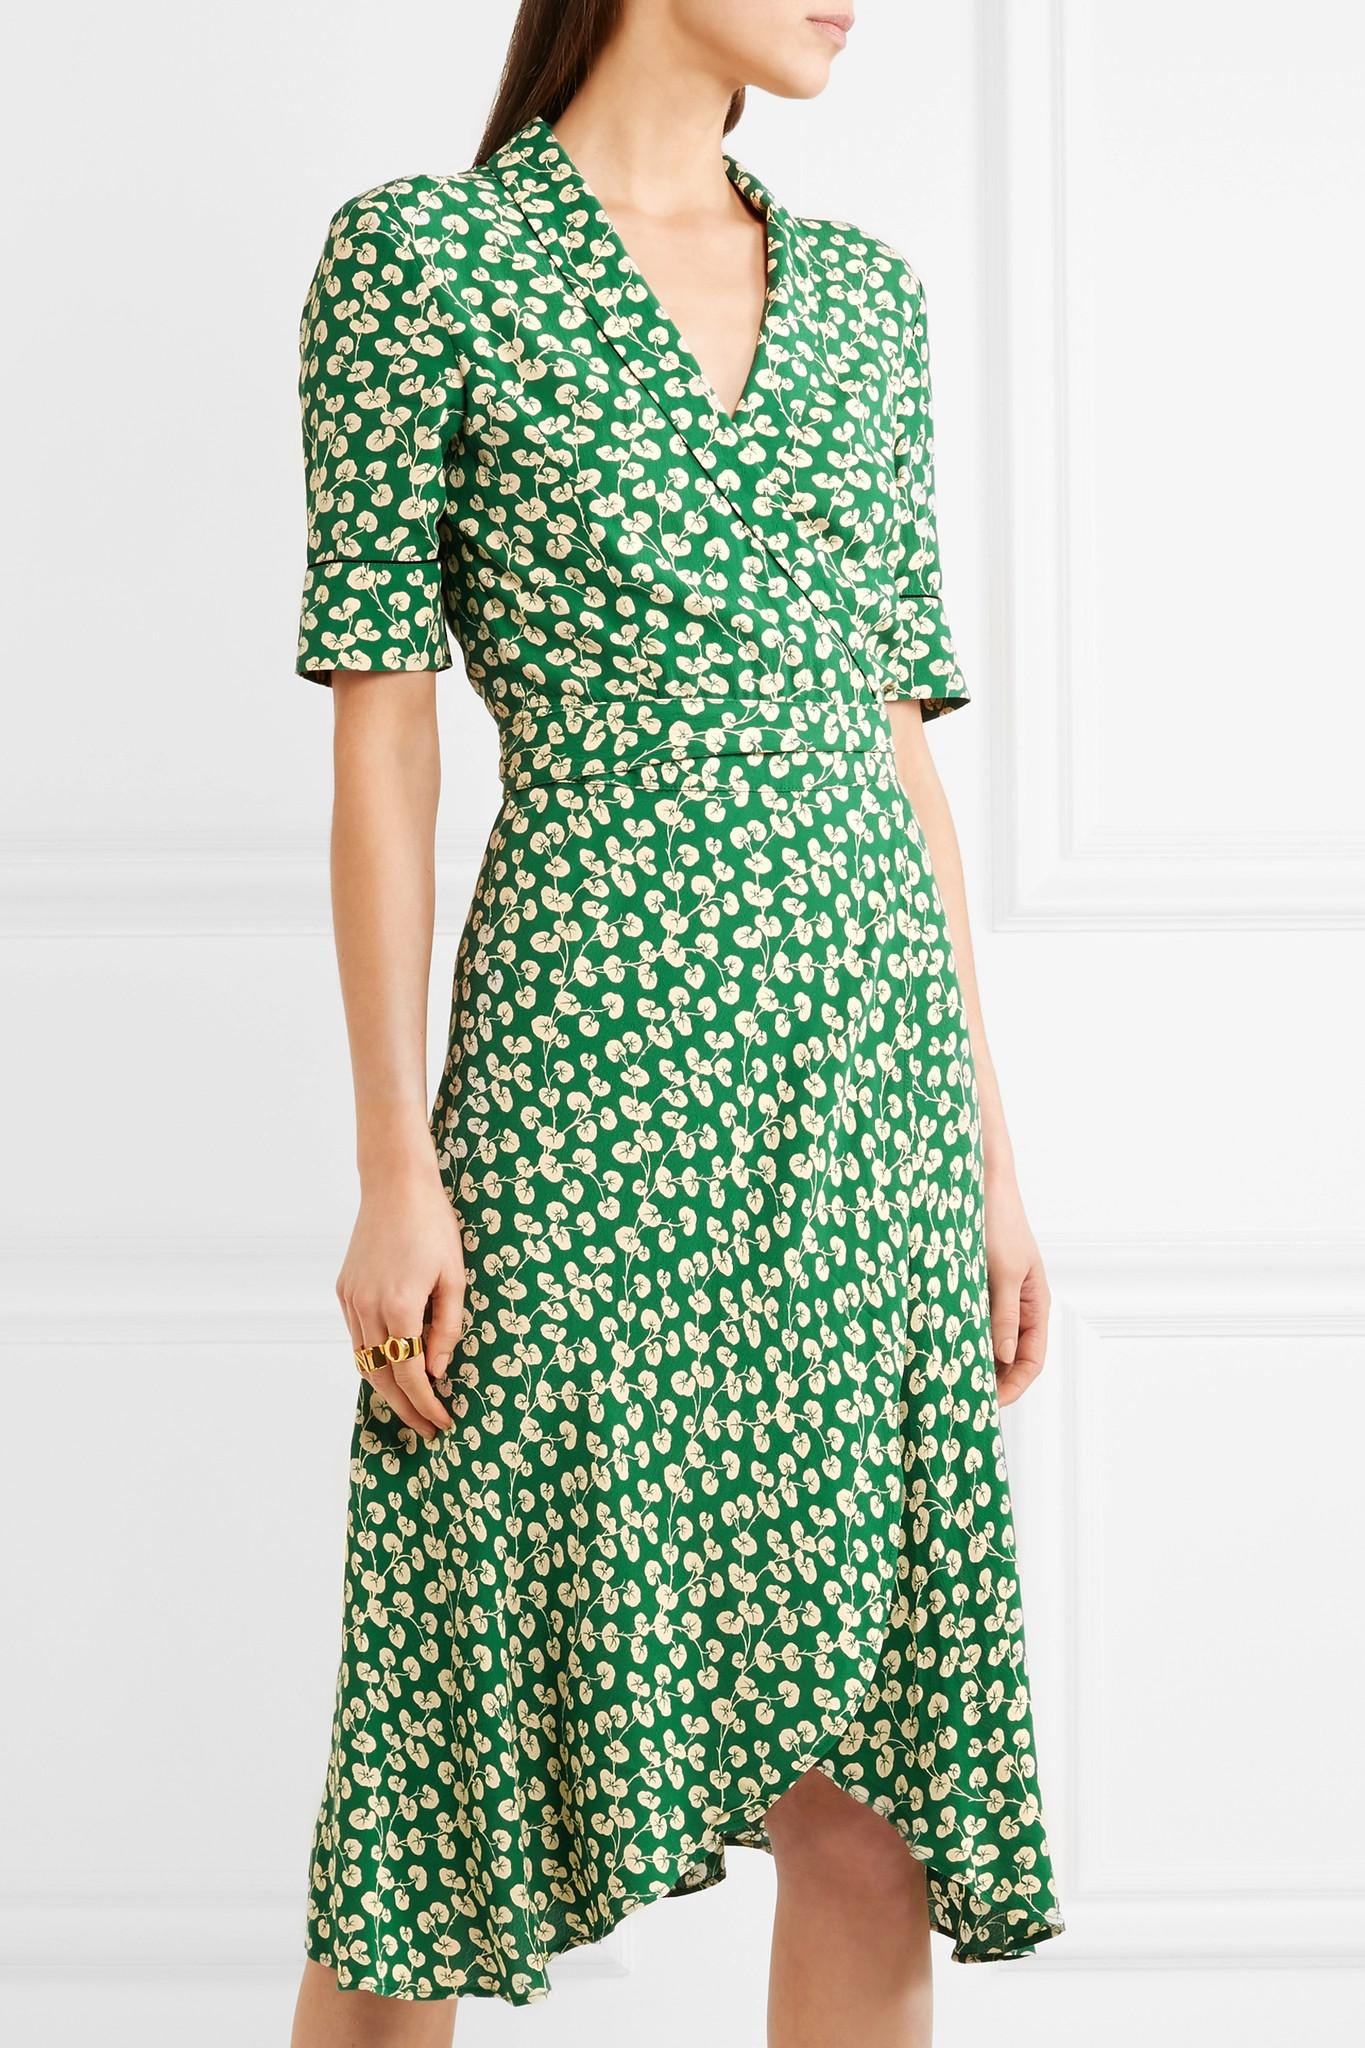 98af5f7f Ganni Dalton Floral-print Crepe Wrap Dress in Green - Lyst